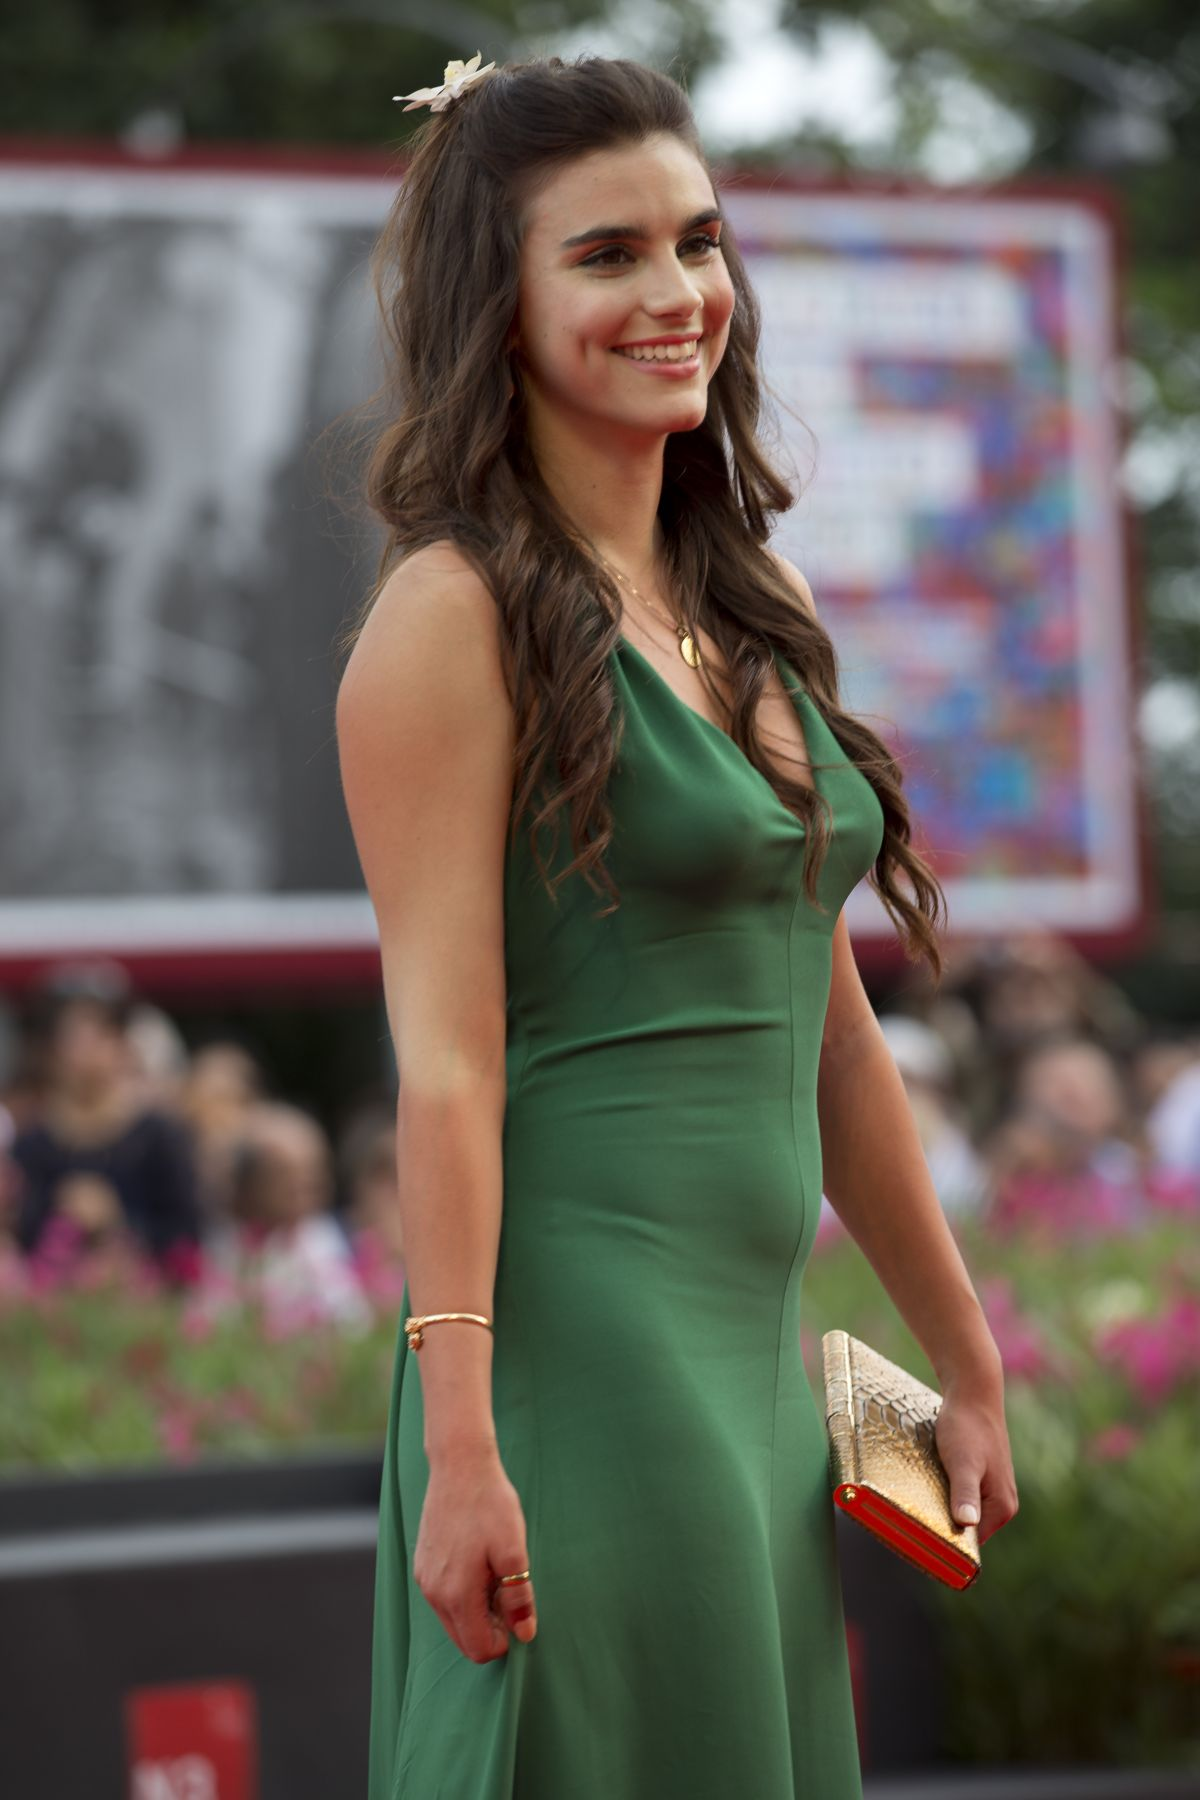 LARA HELLER at The Cut Premiere in Venice